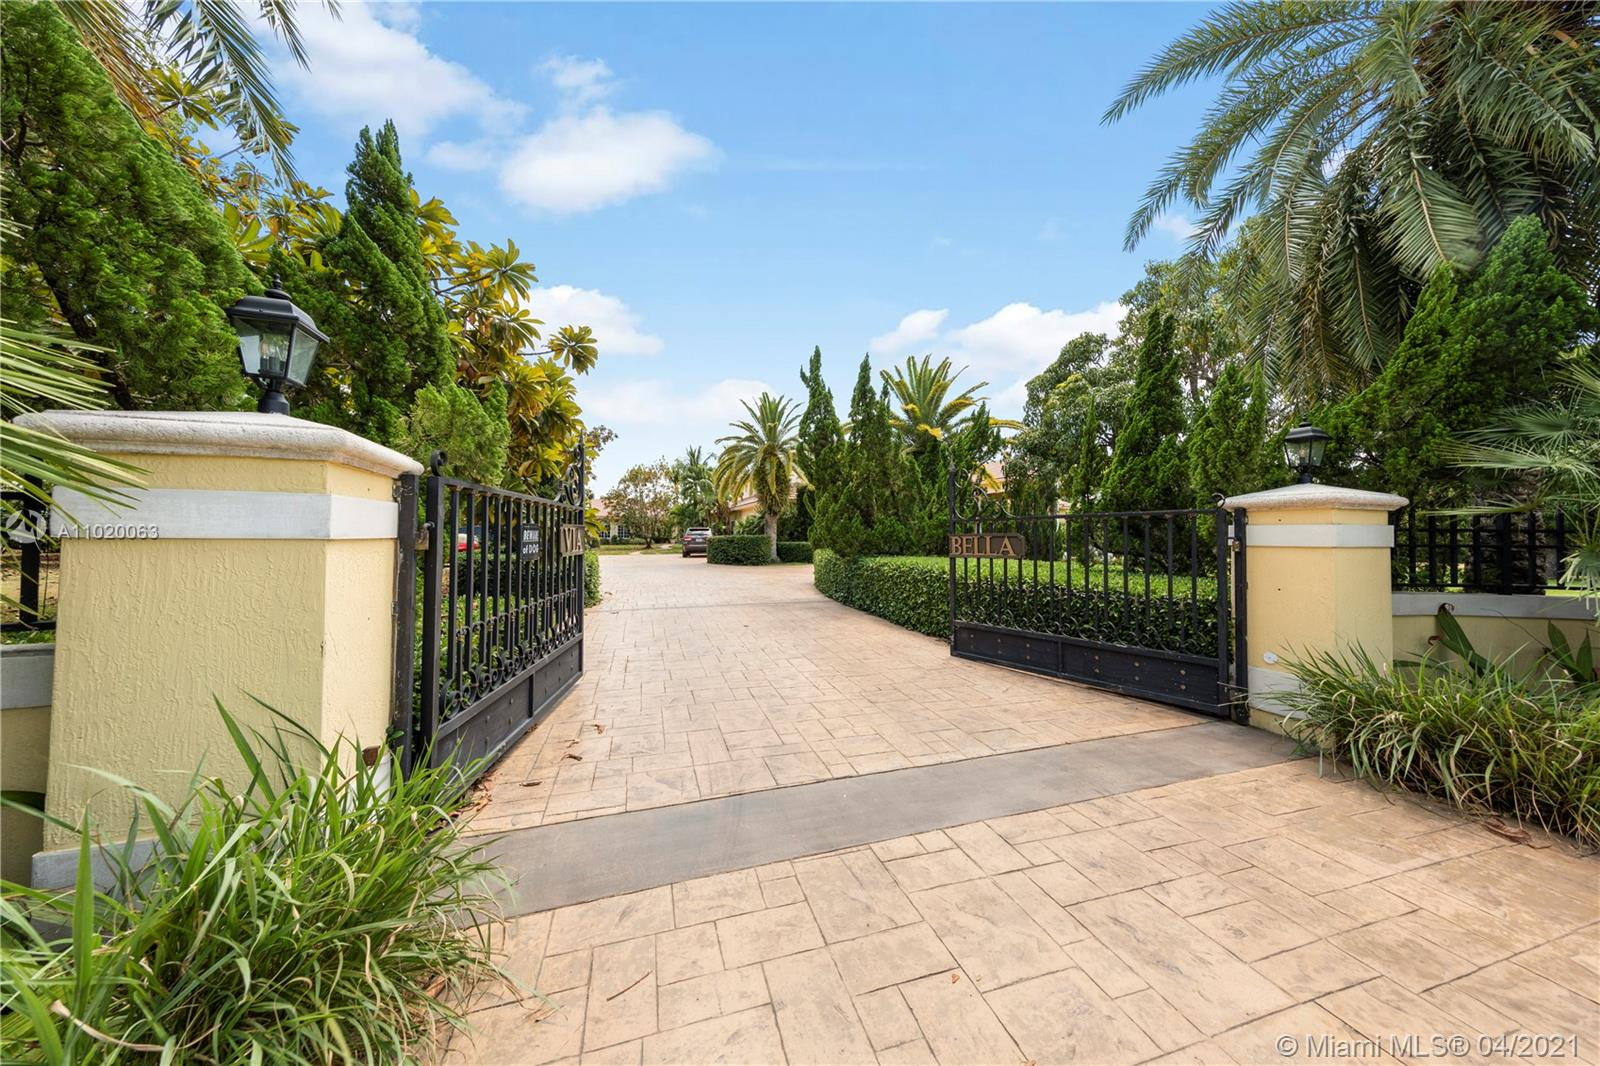 FROM THE EXTERIOR WALL AND CUSTOM GATES TO THE STATELY DRIVE IN SETS THE TONE FOR THIS ESTATE...